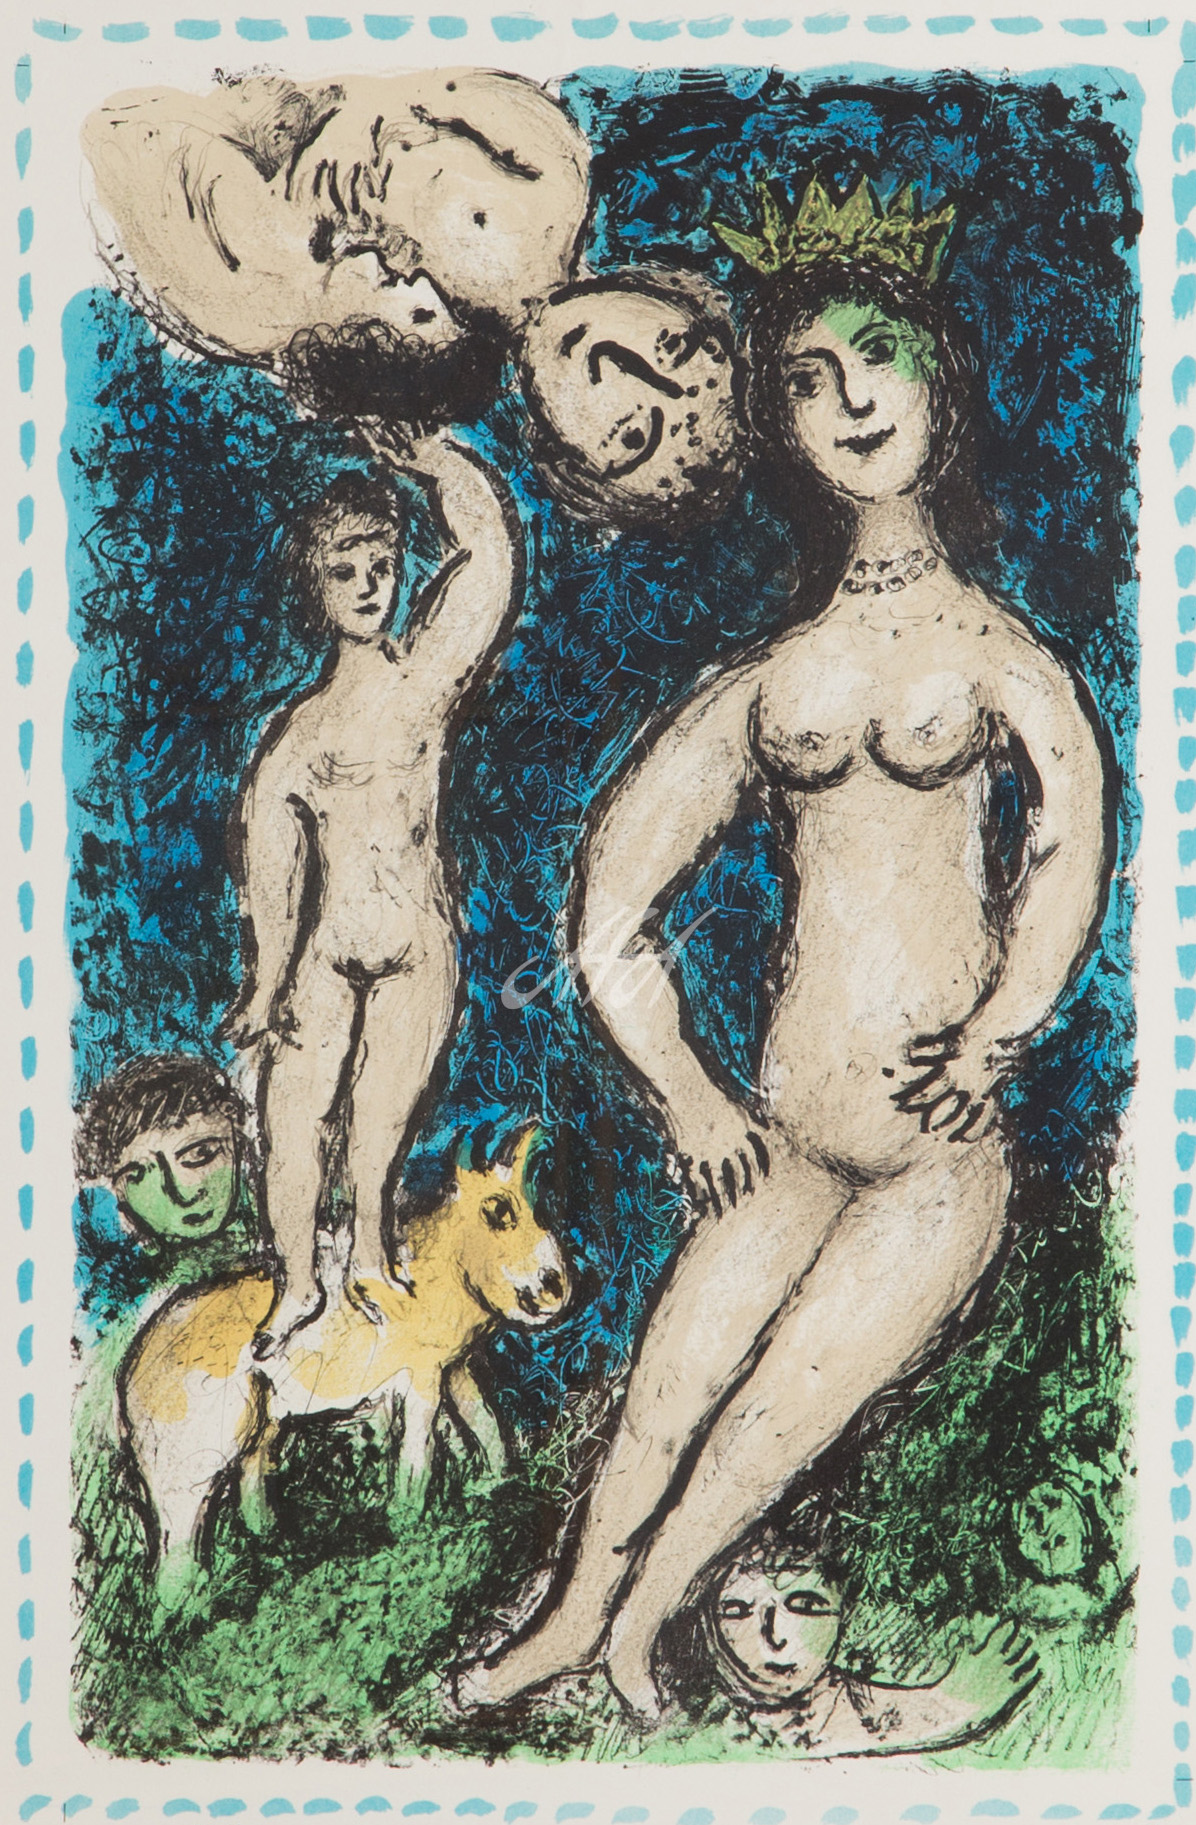 Marc_Chagall_figurative4 LoRes watermark.jpg